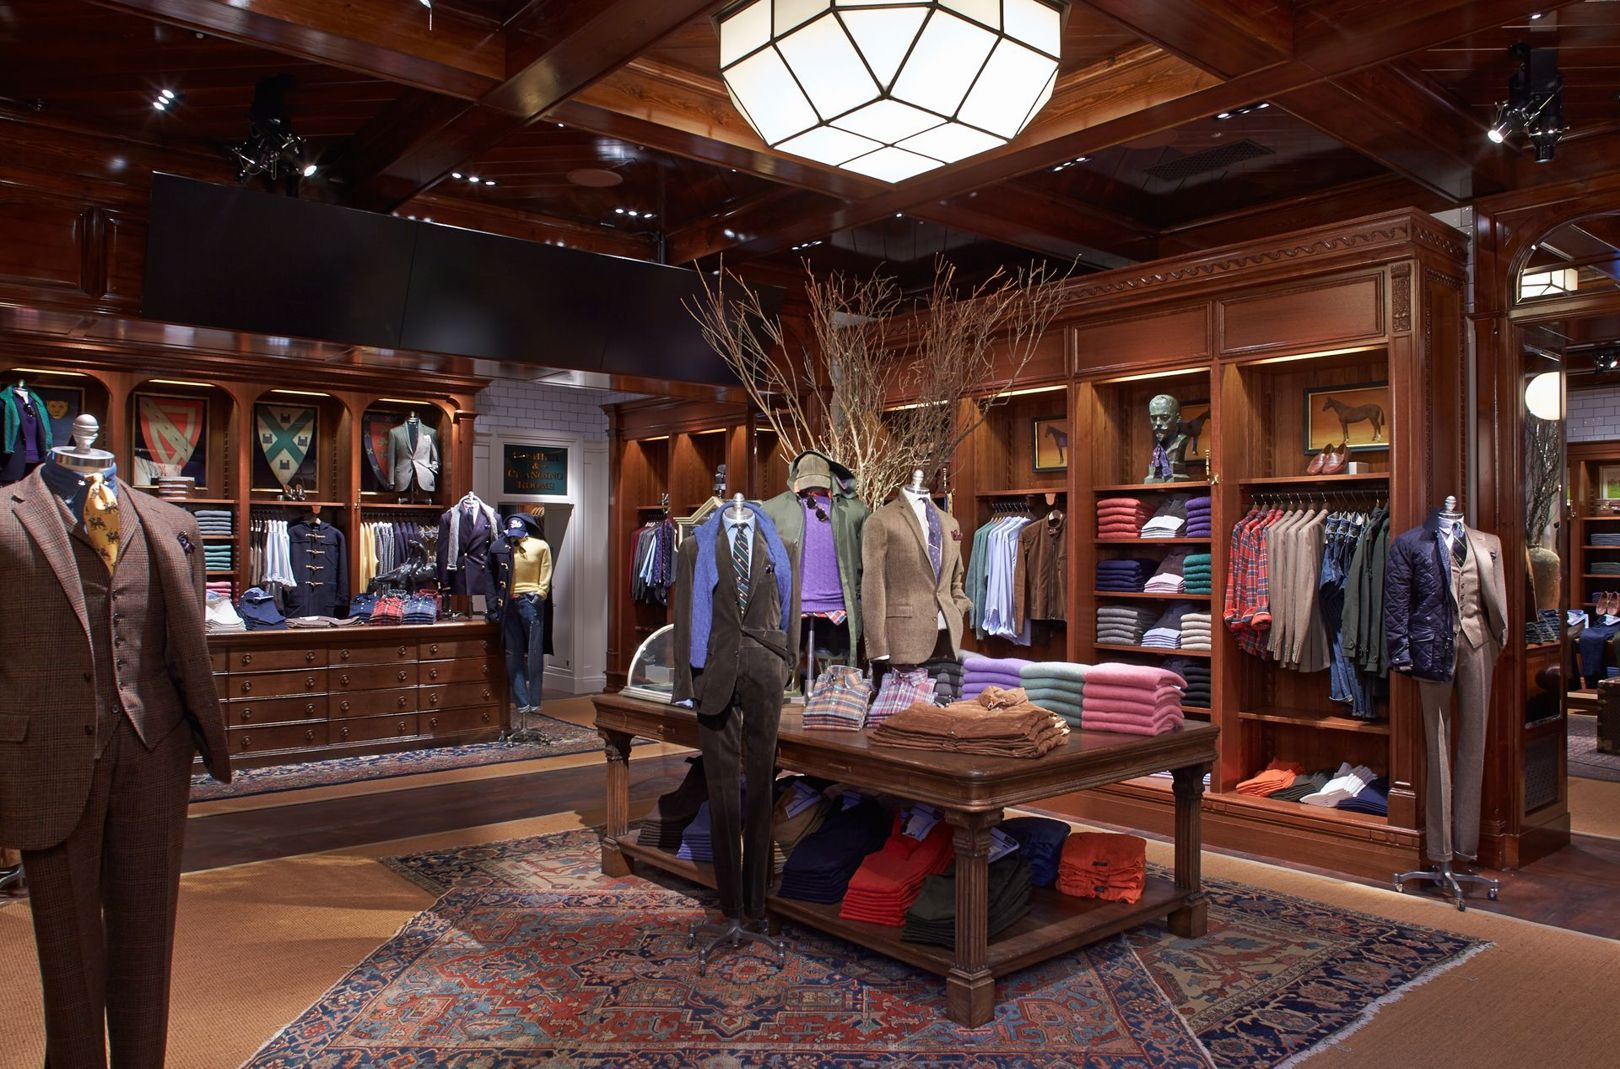 polo ralph lauren opens its new london flagship with the